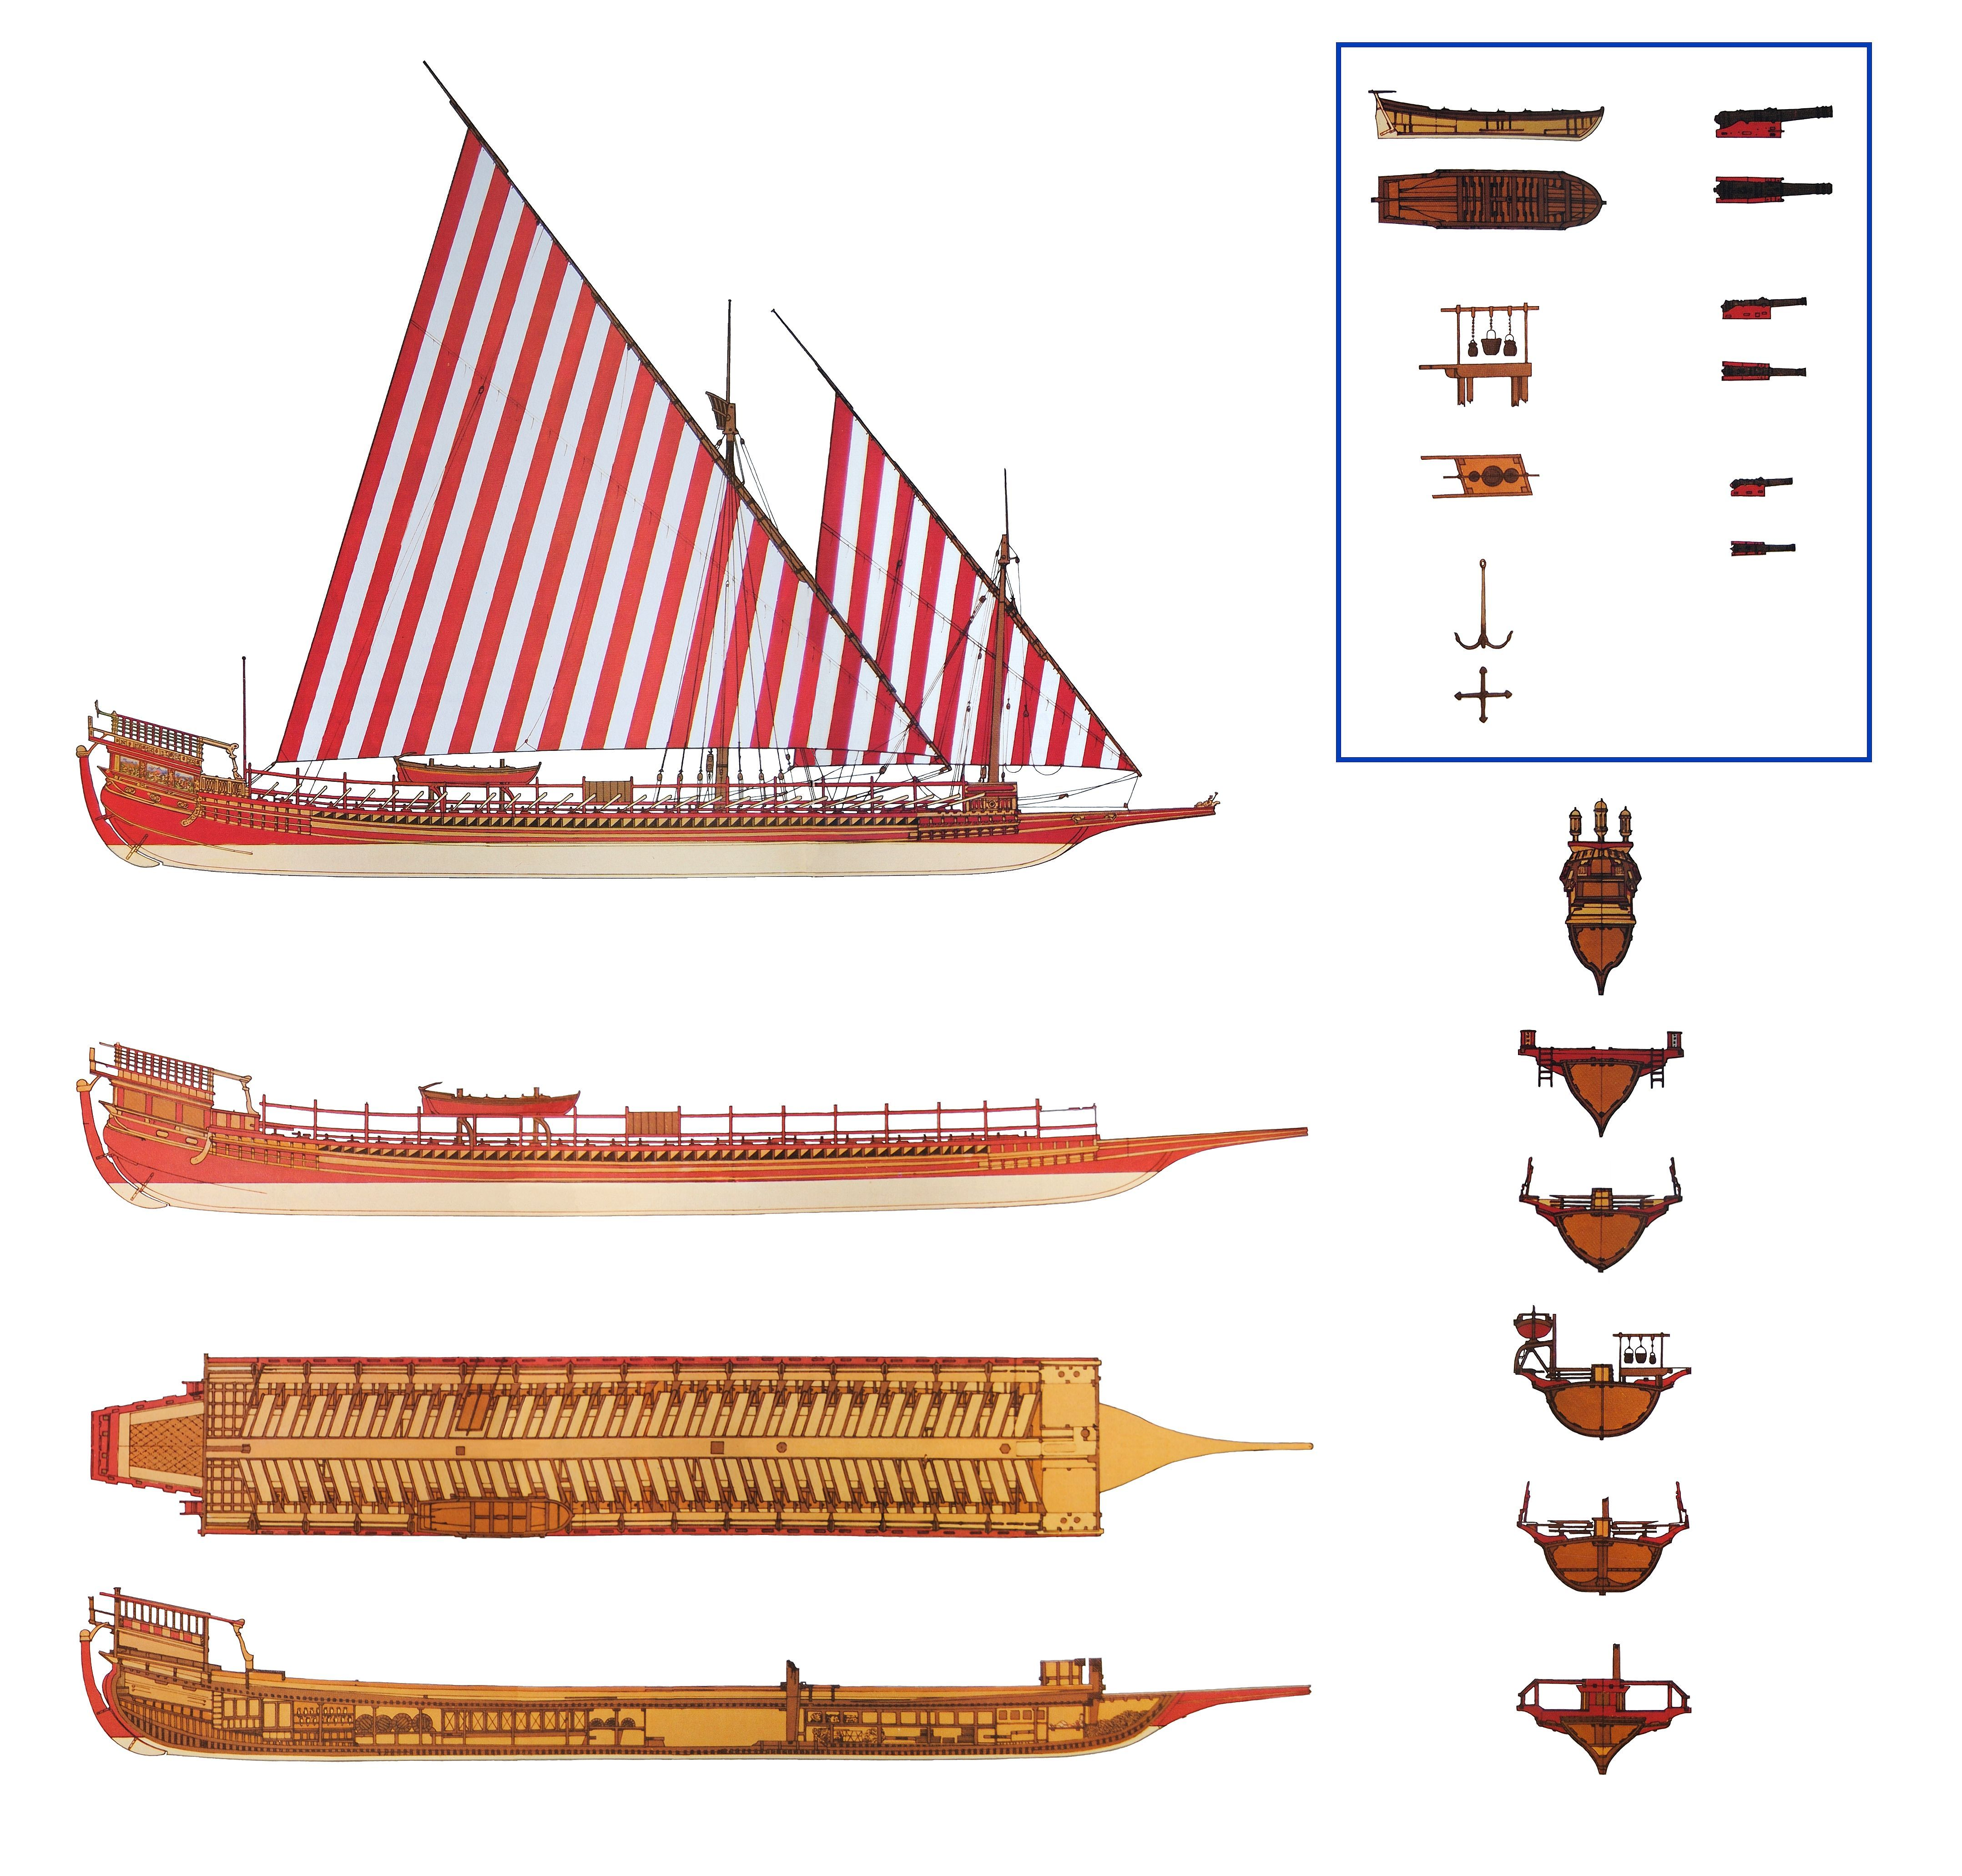 Barbary Galley Armarments And Views The Corsairs Commonly Pirate Ship Diagram Piratediary Used Galleys As Small Fast Ships In 16th Century Caribbean Pirates